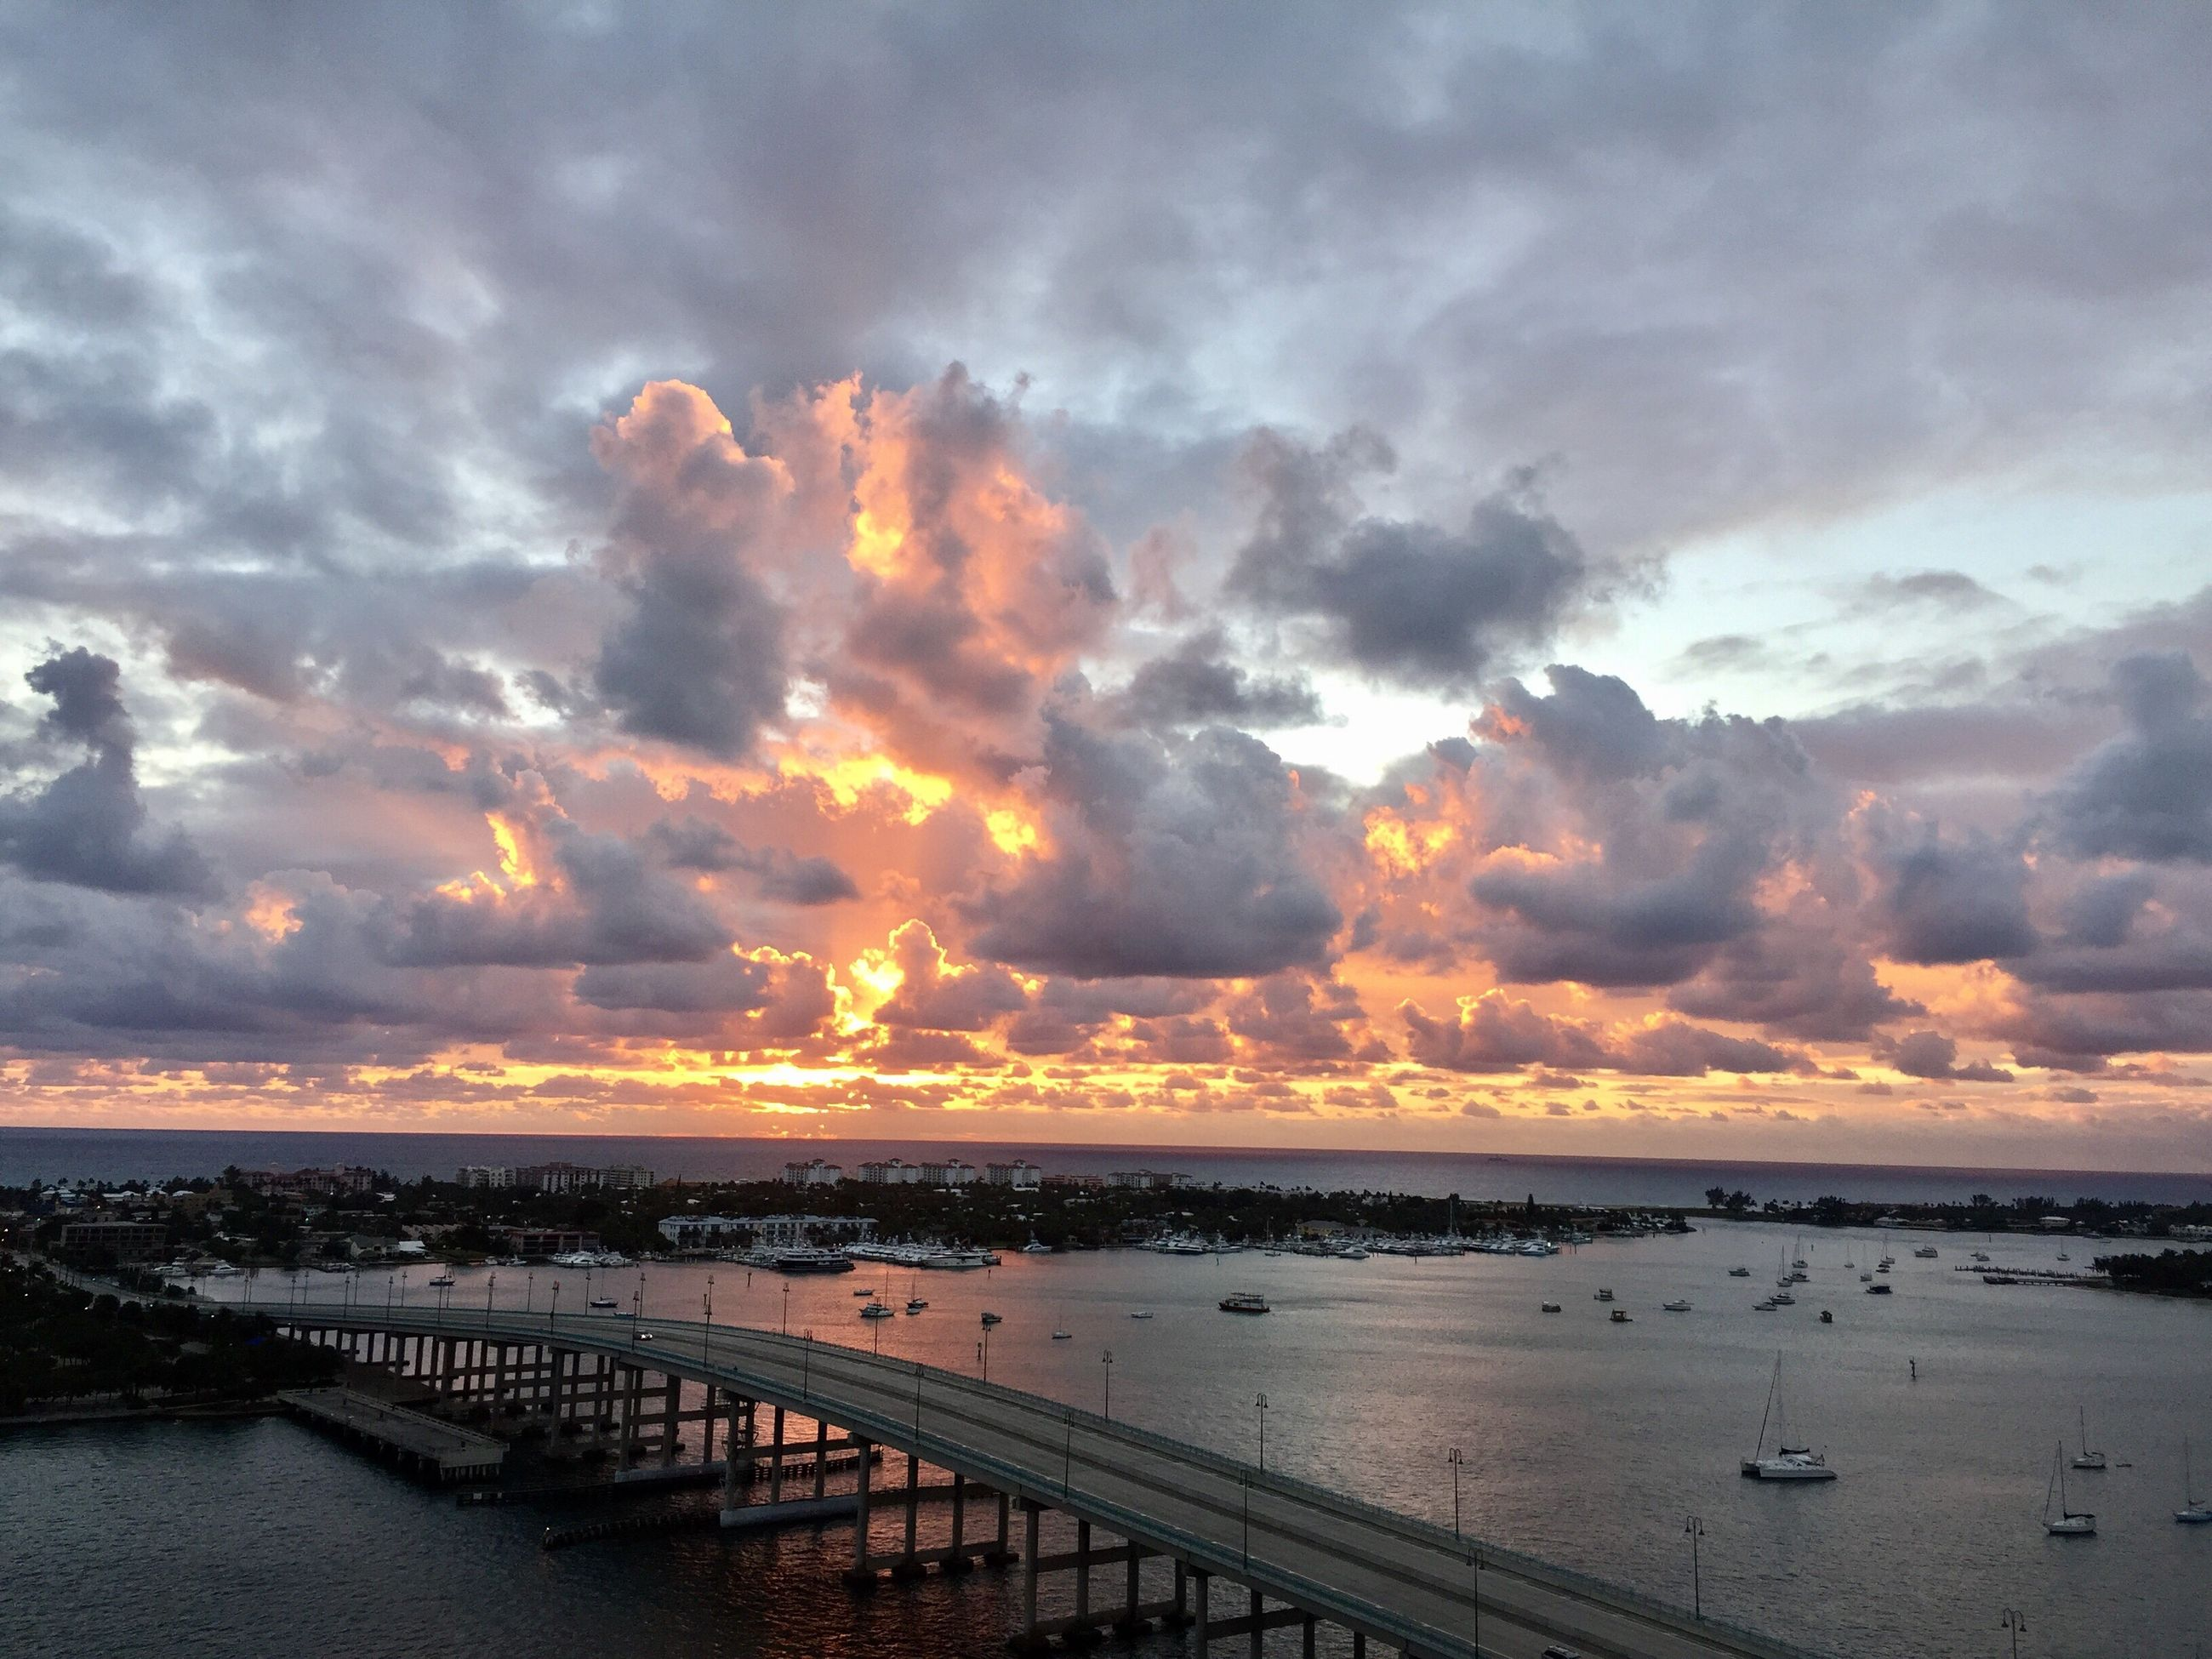 cloud - sky, sunset, dramatic sky, sea, nature, sky, beauty in nature, outdoors, scenics, no people, water, thunderstorm, power in nature, day